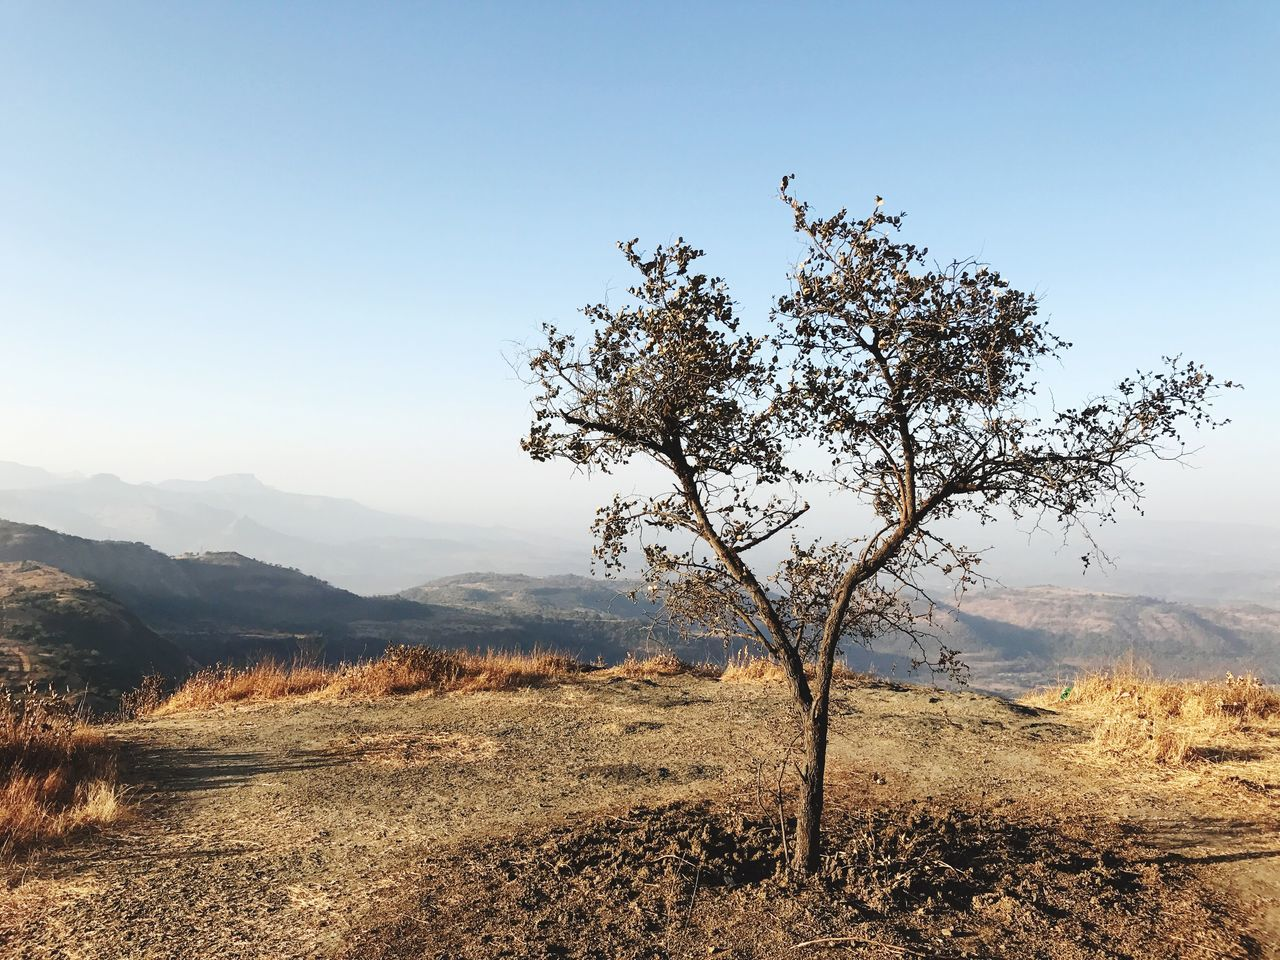 landscape, tree, nature, tranquility, tranquil scene, beauty in nature, scenics, mountain, outdoors, day, clear sky, no people, sunlight, lone, arid climate, sky